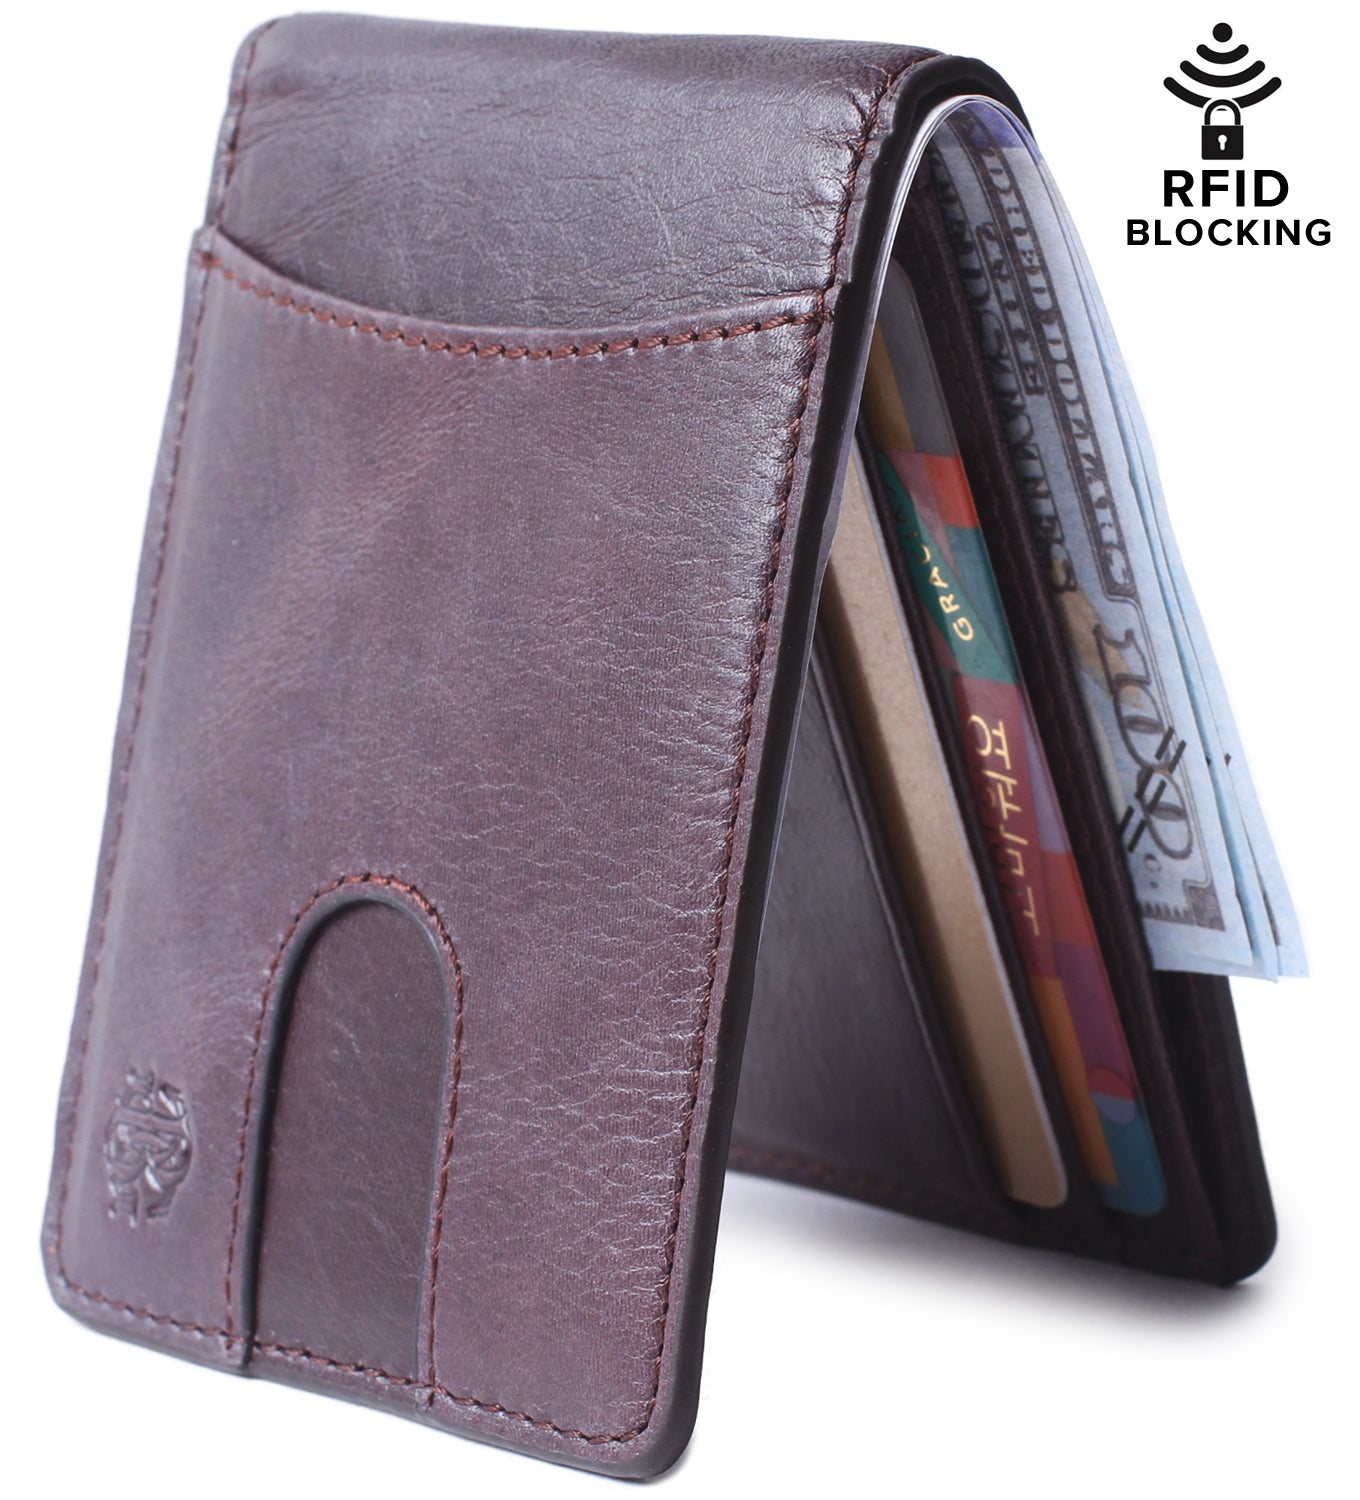 RFID Blocking Bifold Slim Genuine Leather Thin Minimalist Front Pocket Wallets for Men Money Clip - Made From Full Grain Leather Unisex Rosswood